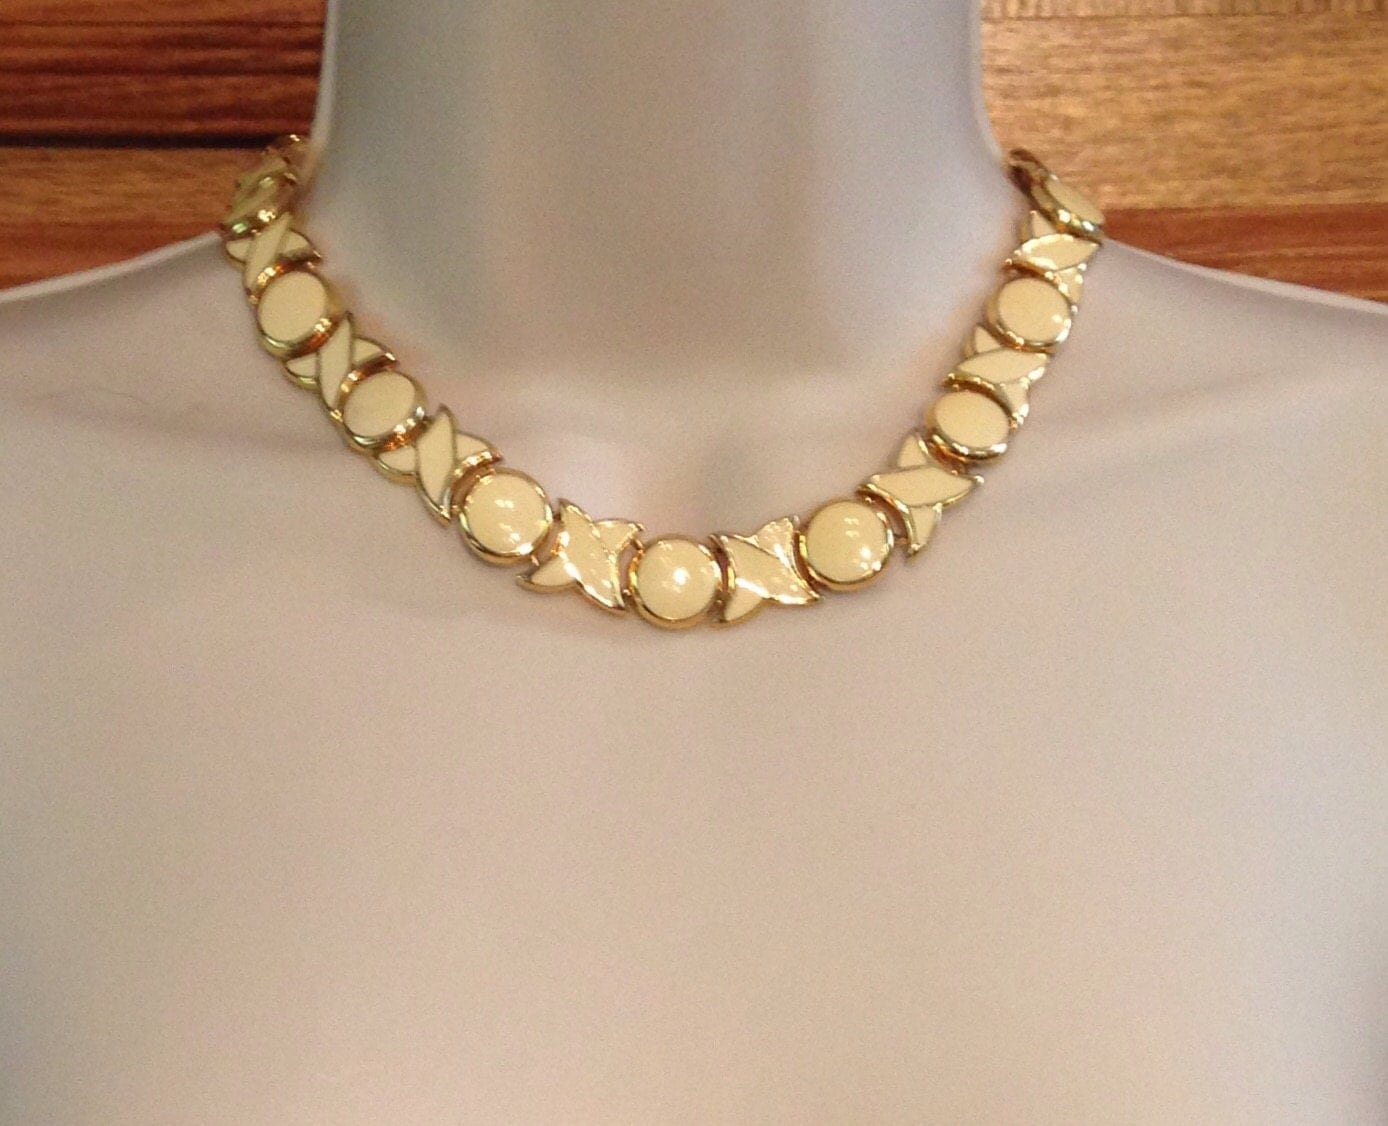 gold and ivory xo choker necklace 16 and 5 8 inches